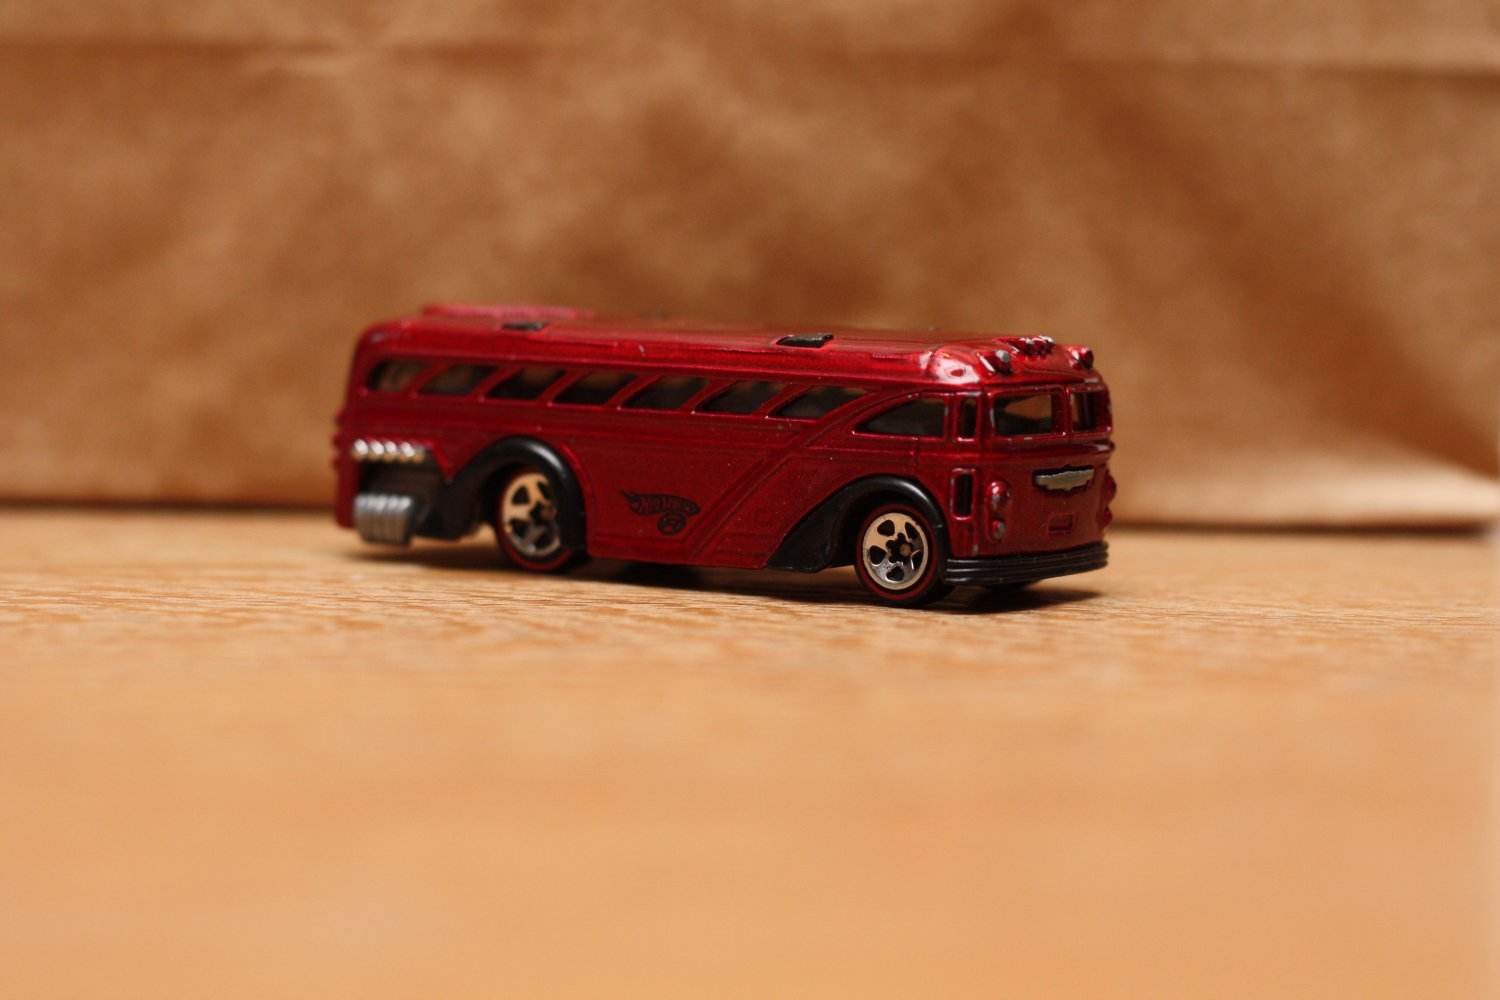 [USED] Hot Wheels 2005 Red Lines Surfin' School Bus (red)